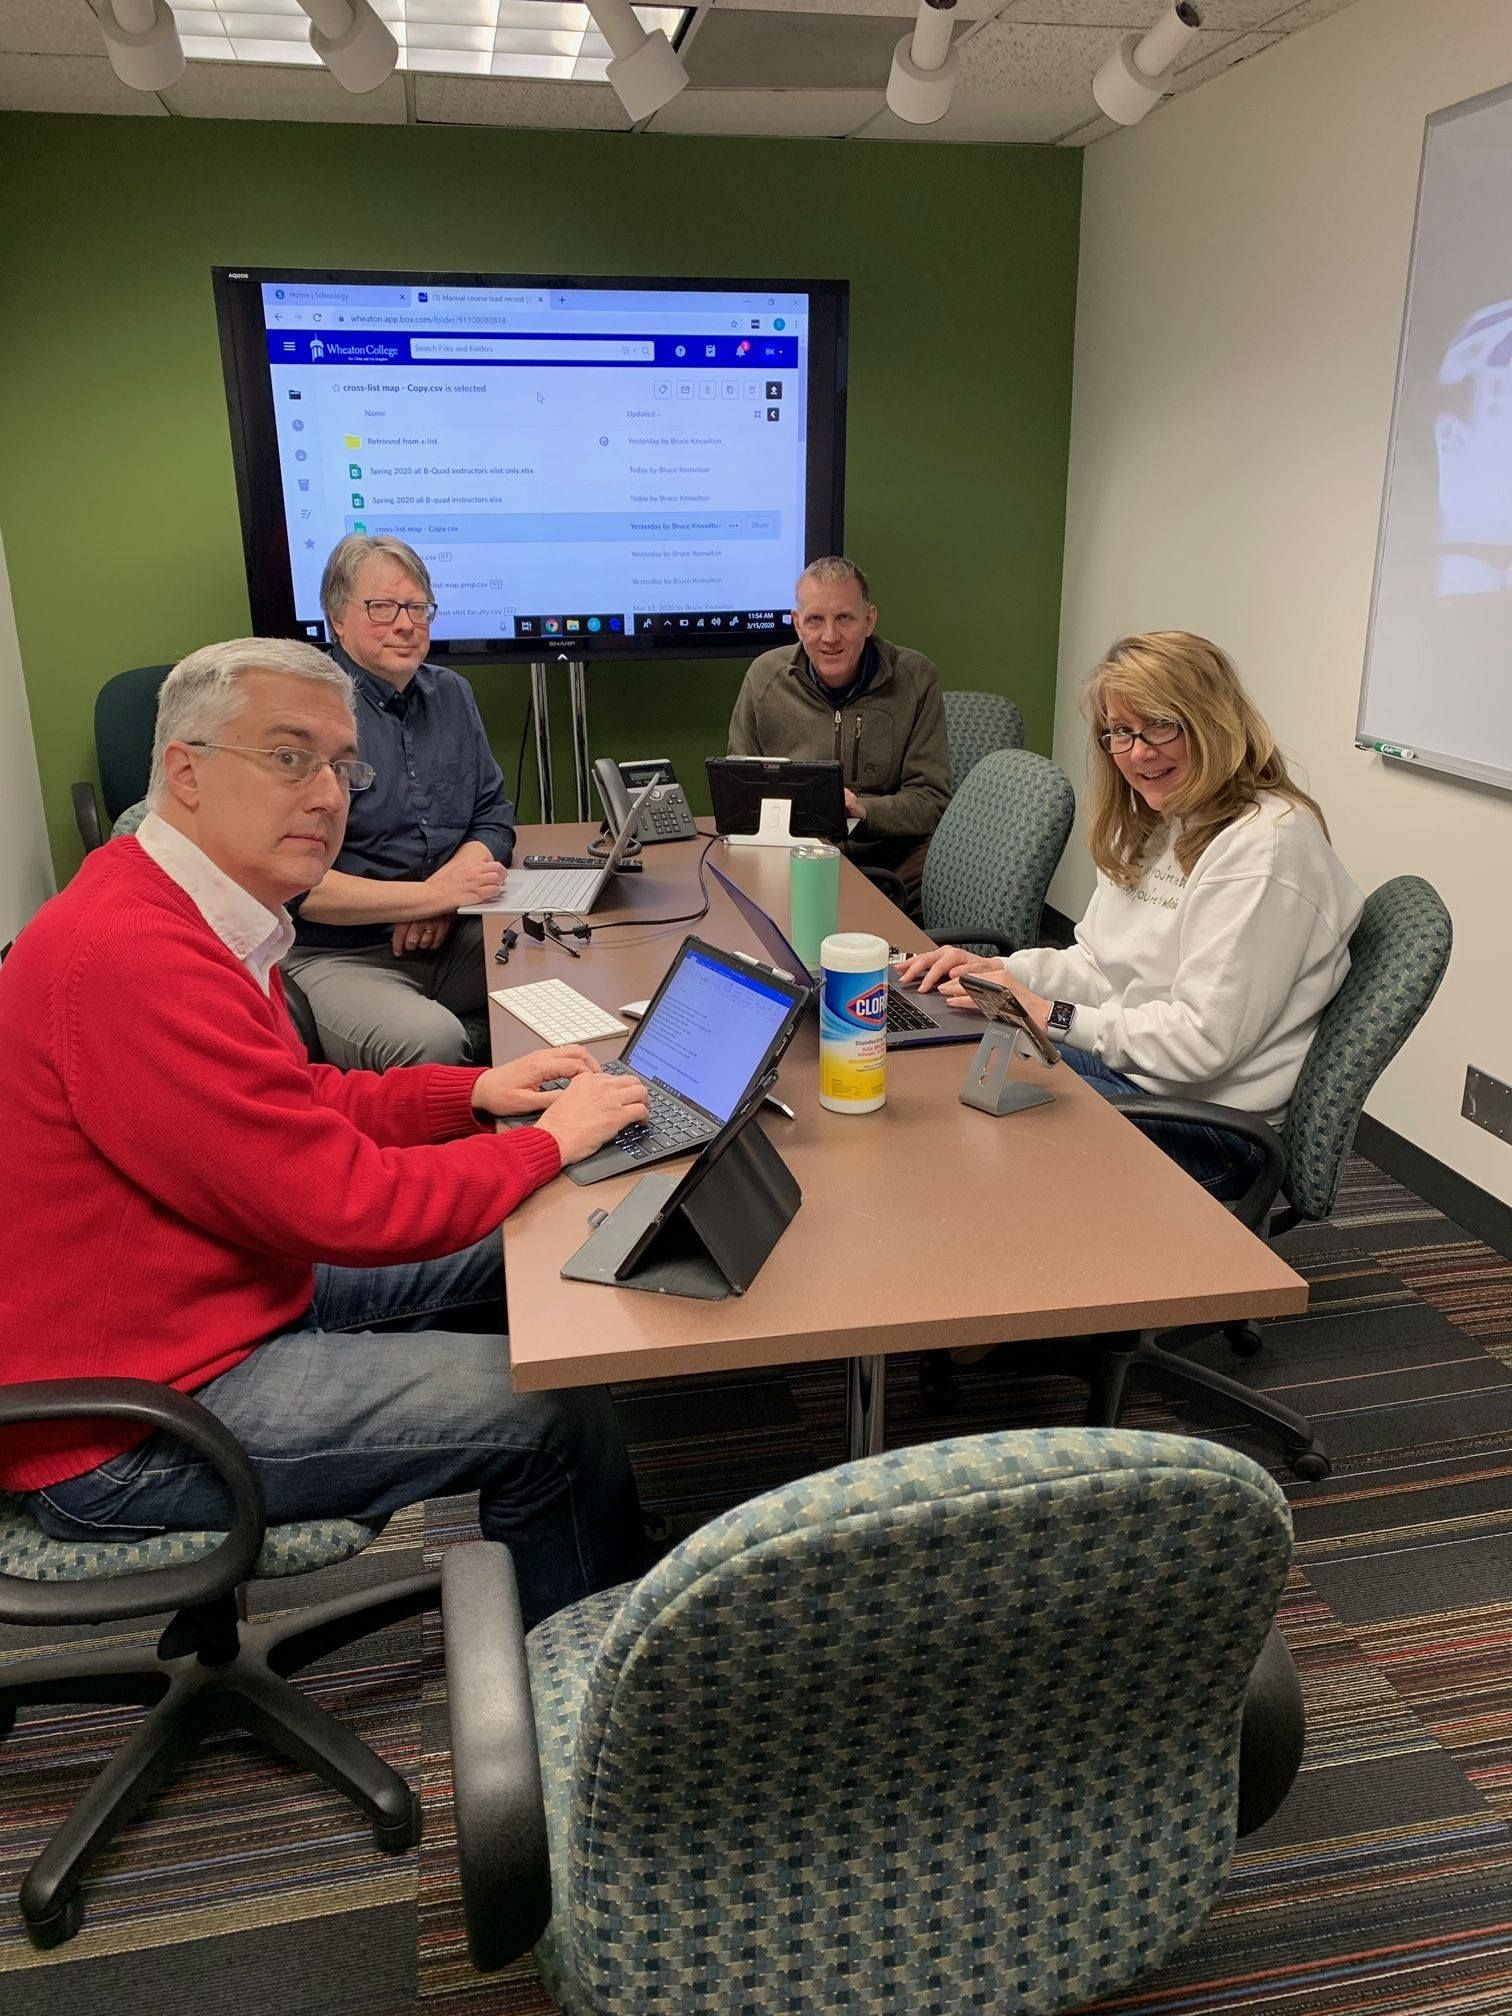 Academic and Institutional Technology prepping to support faculty as they move to online learning.